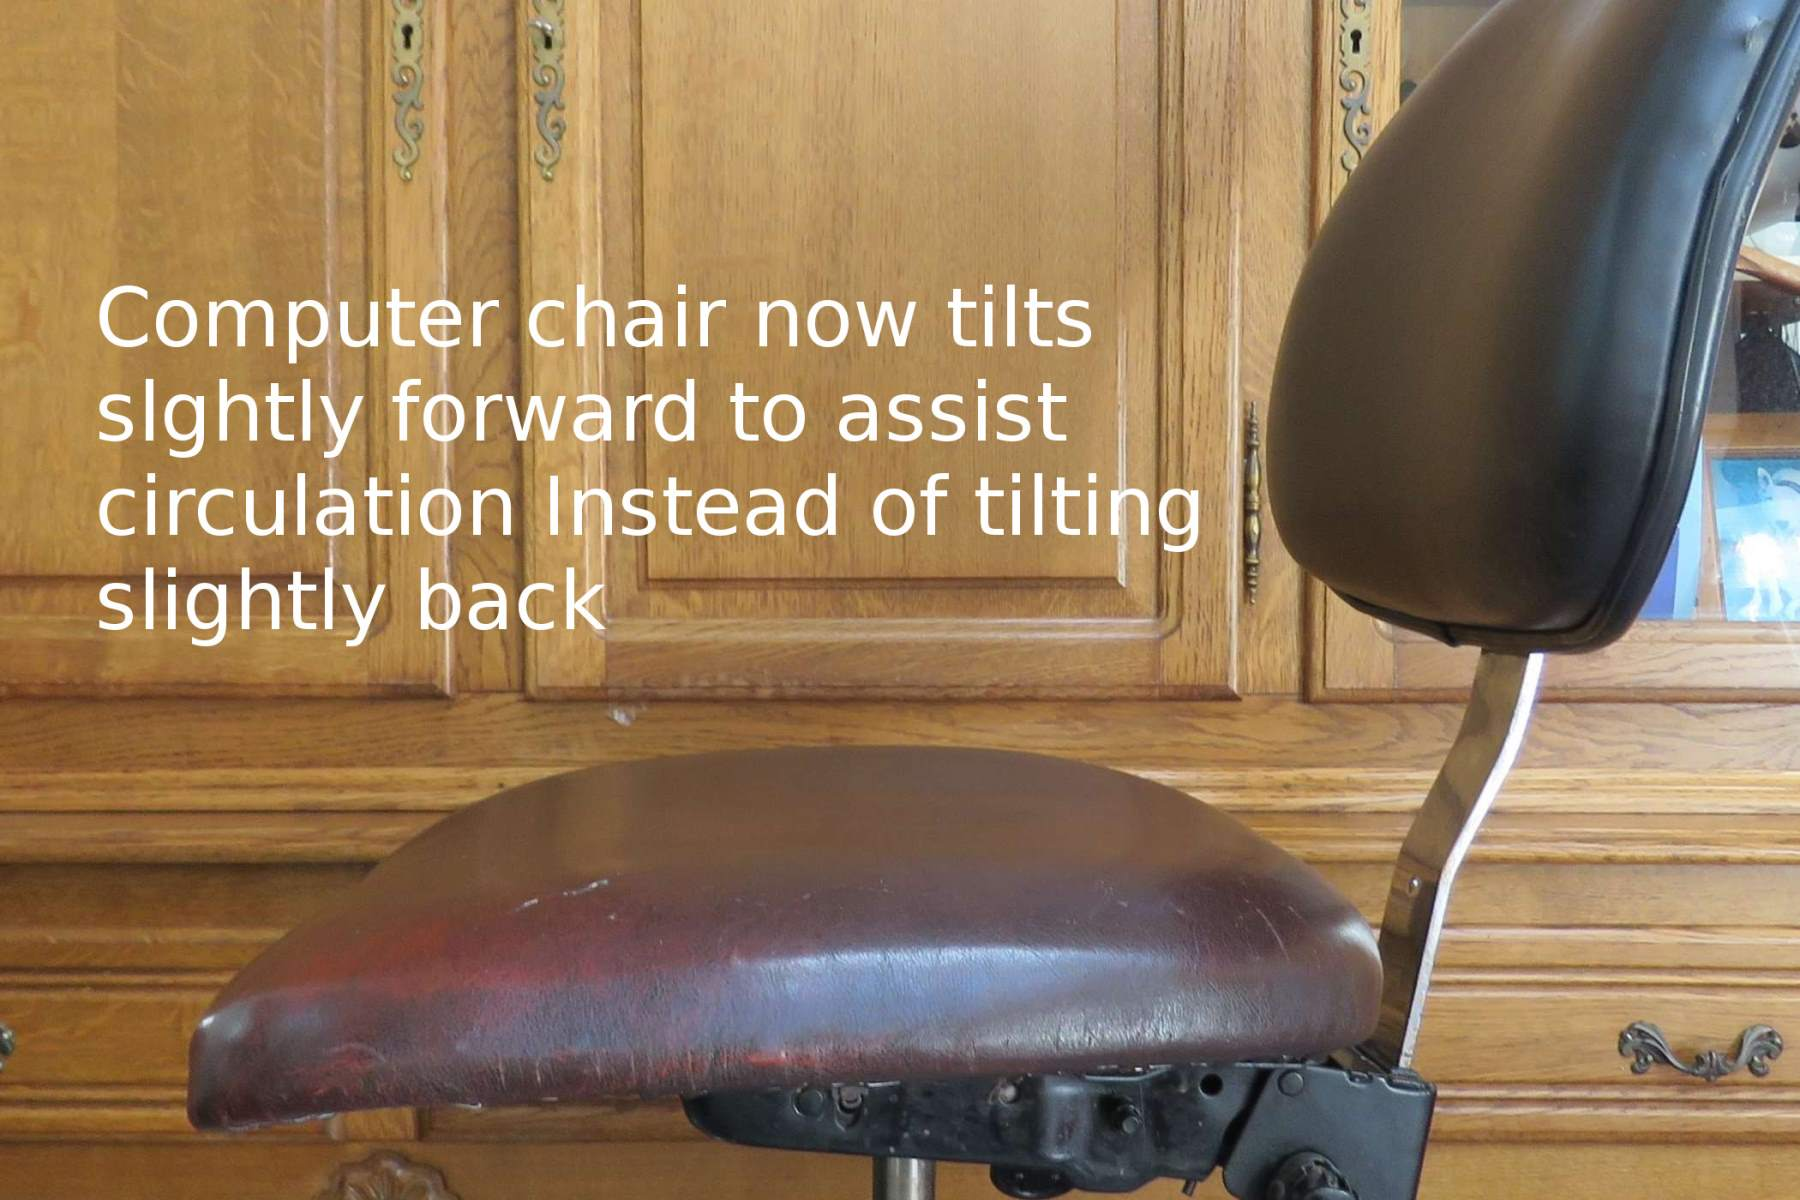 computer_chair_modified_inclined_therapy4.jpg - 187.23 kB